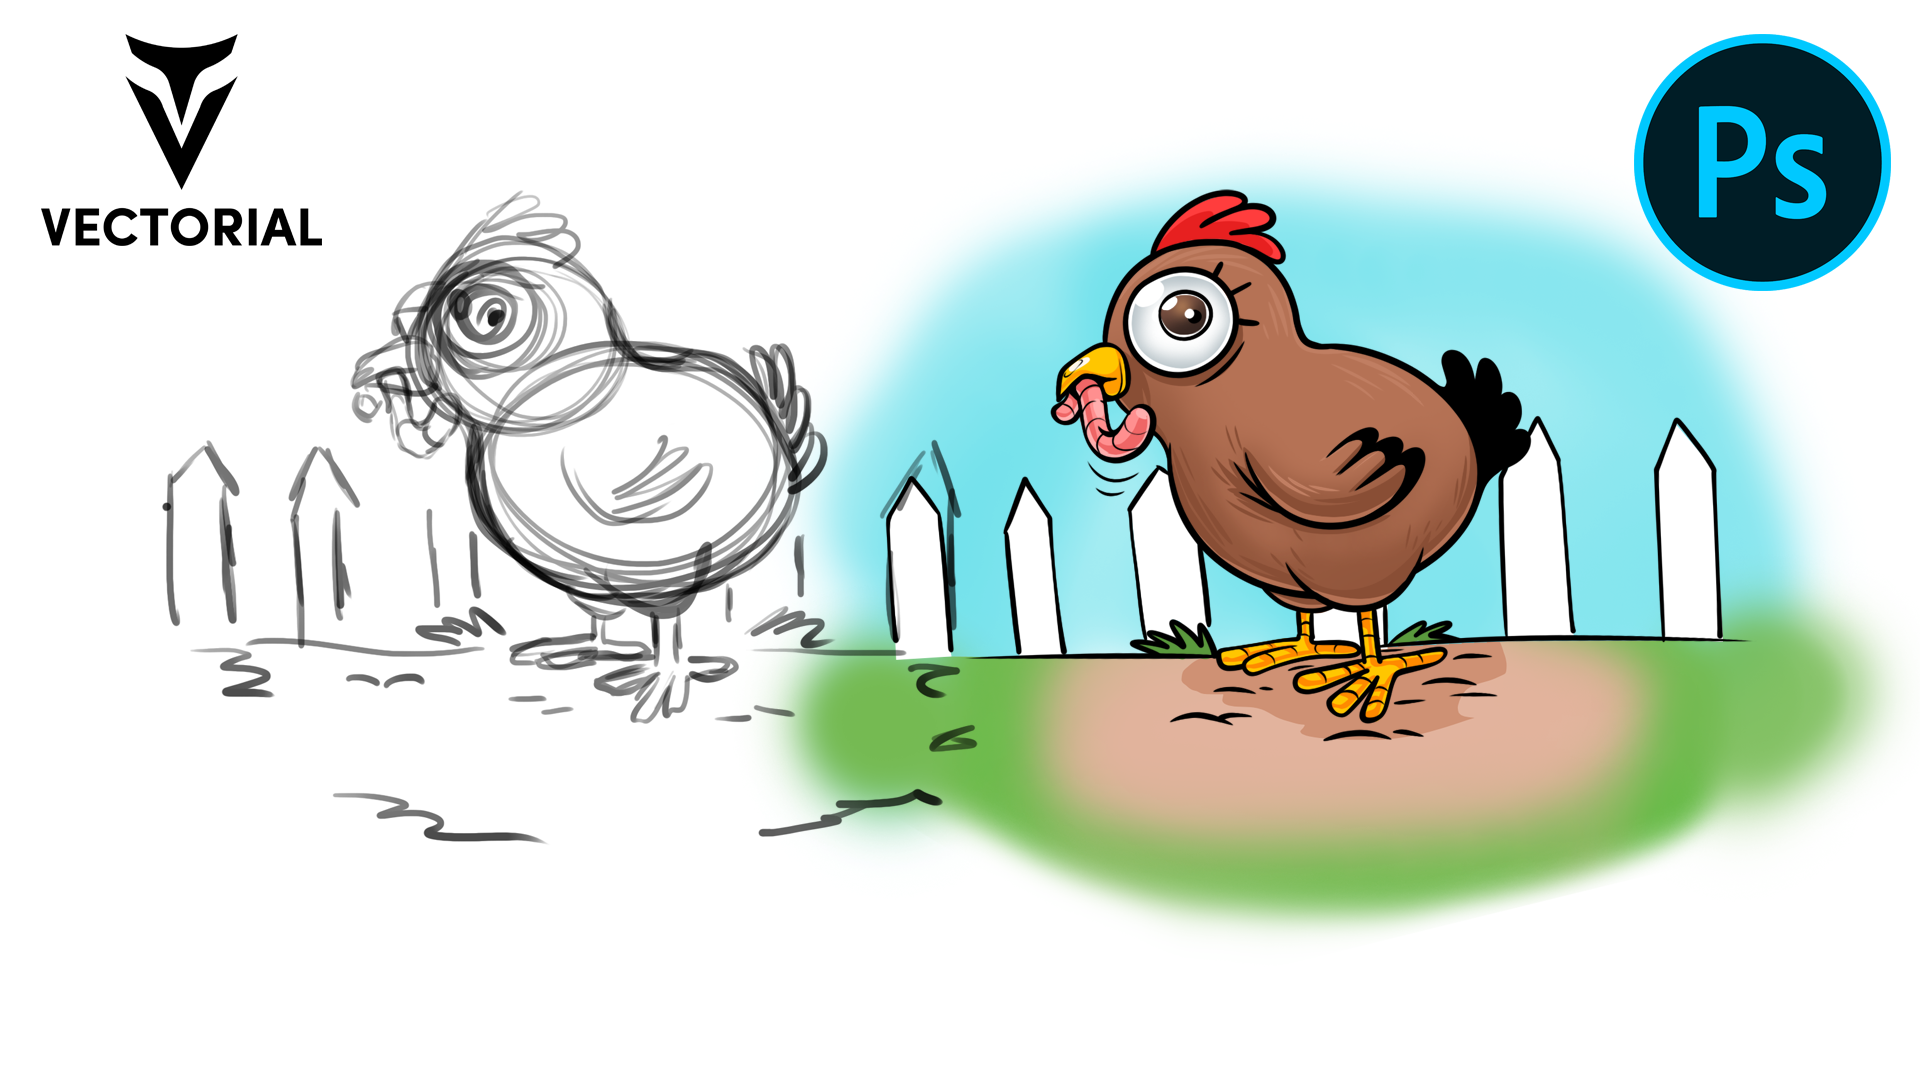 How to draw a Chicken in Adobe Photoshop